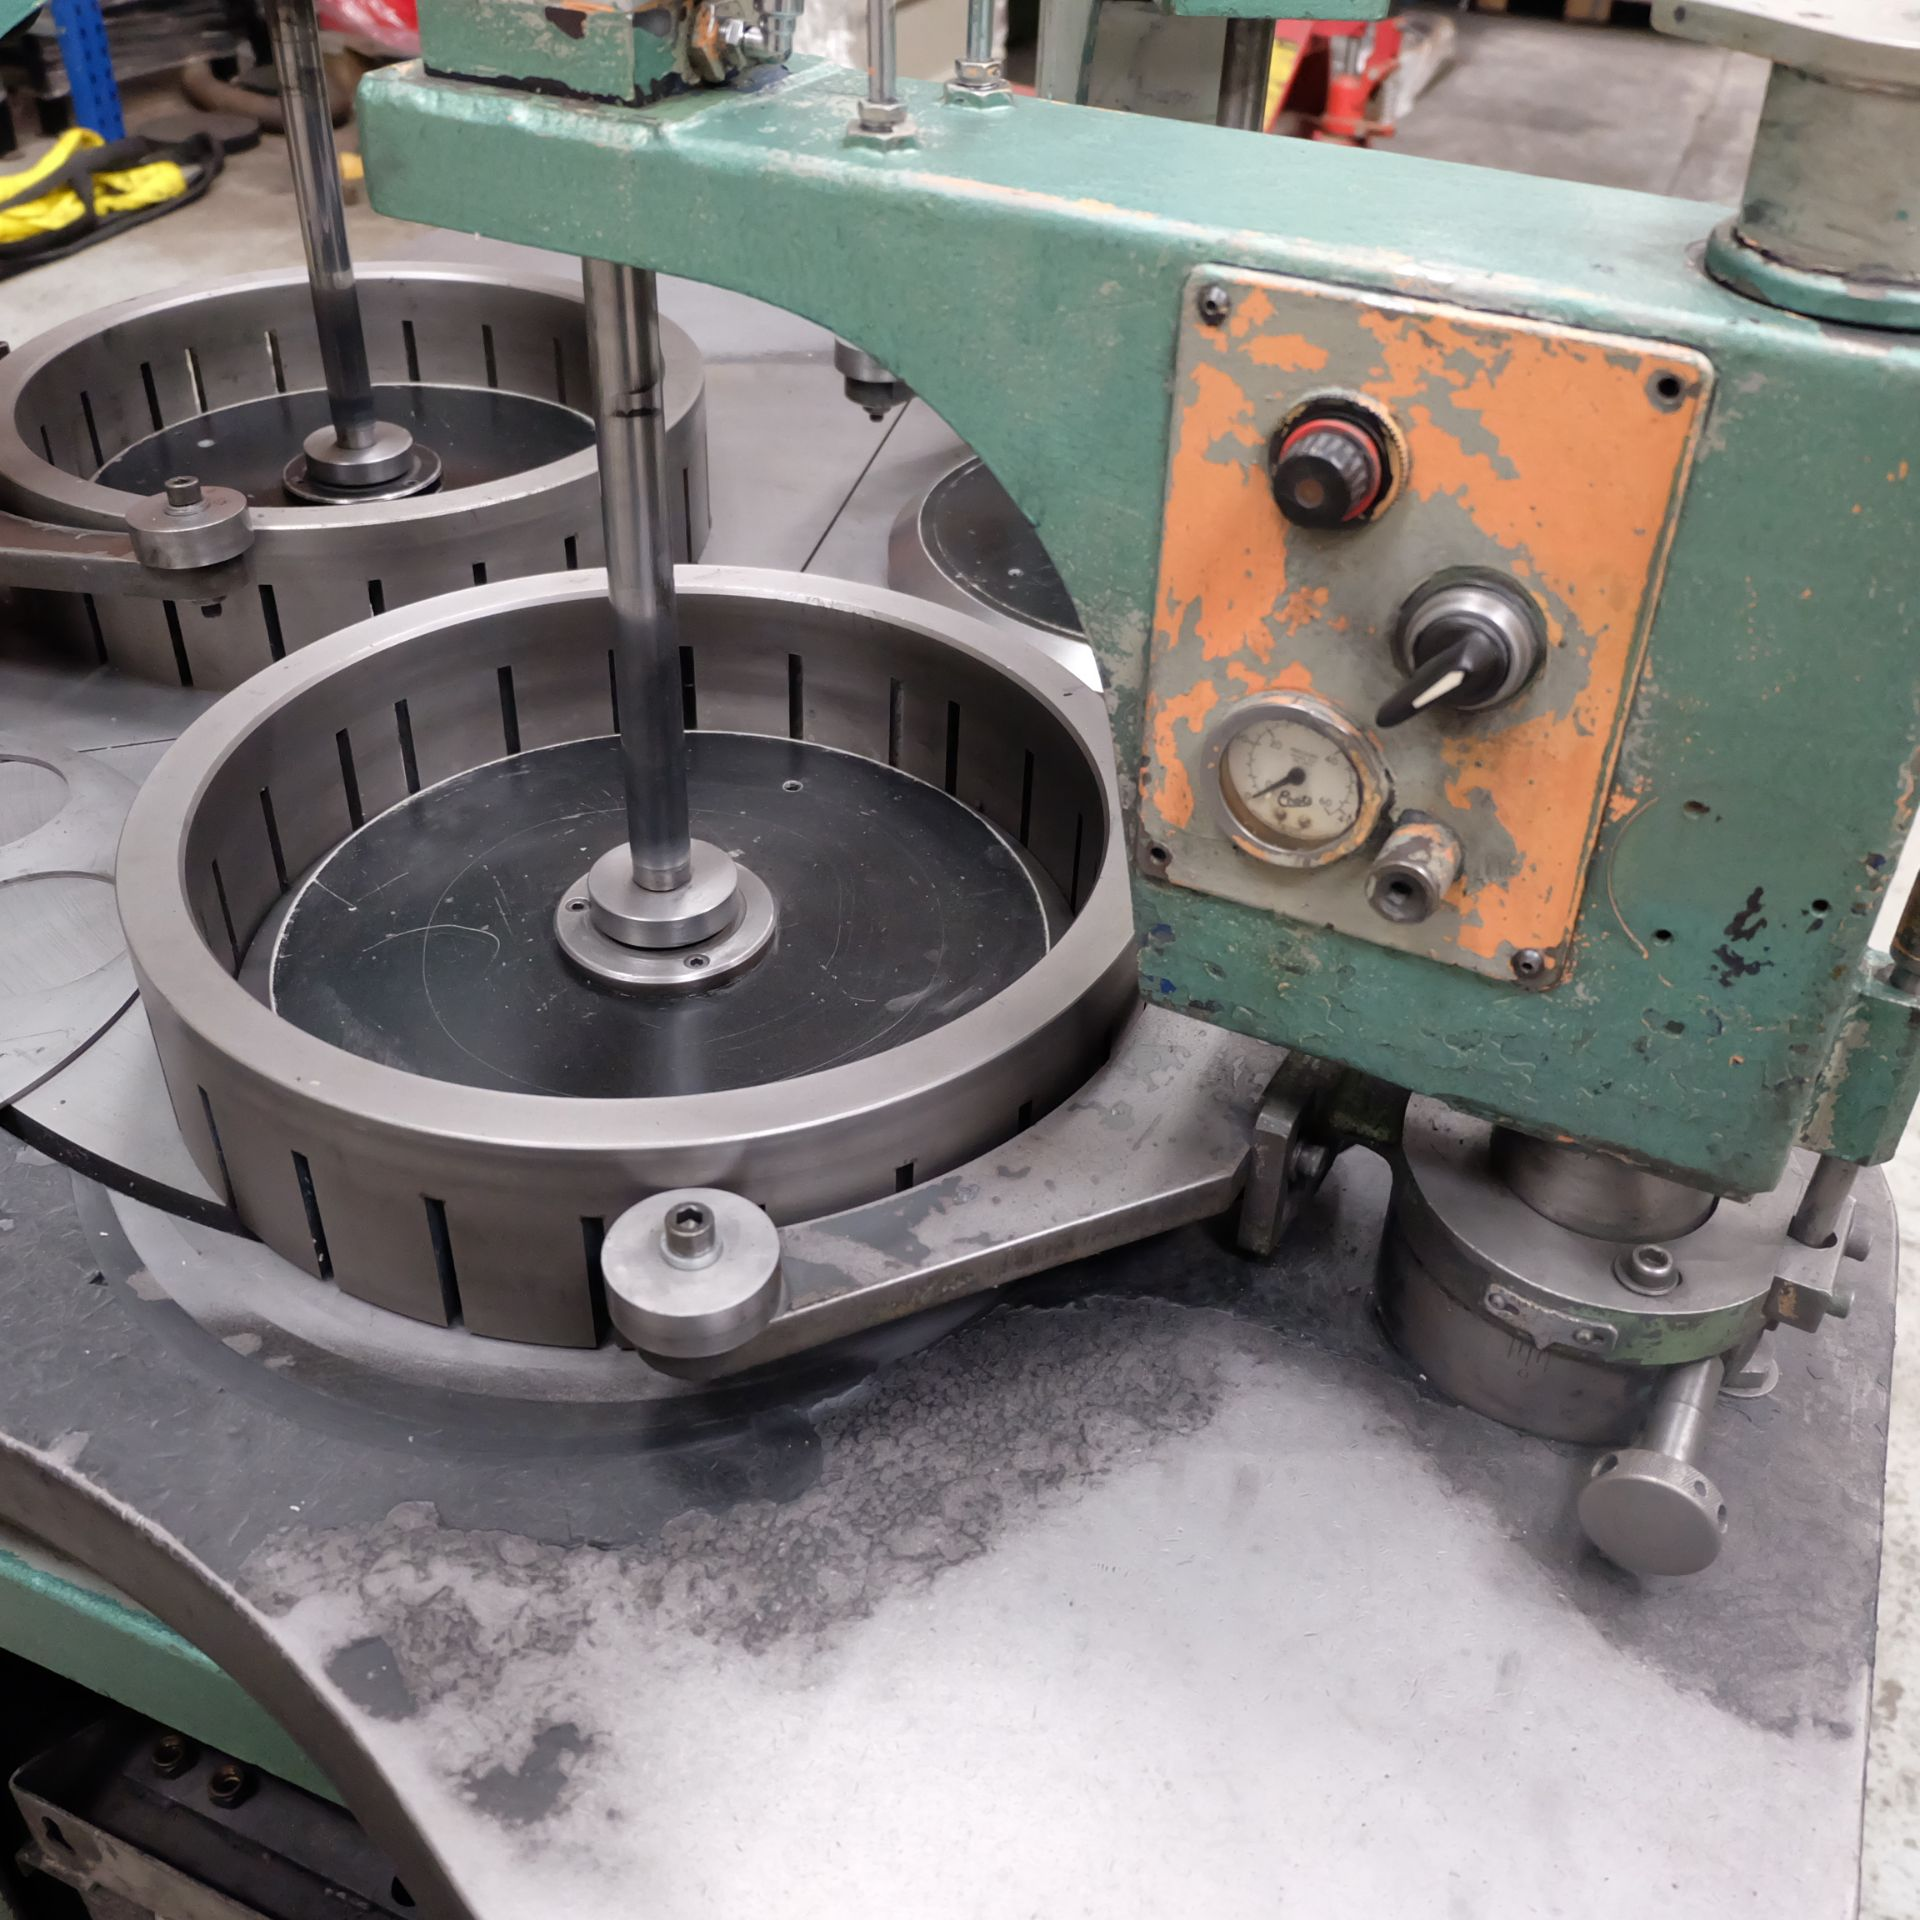 Lot 44 - A Precisionlap Model 36 Lapping Machine, Table dia